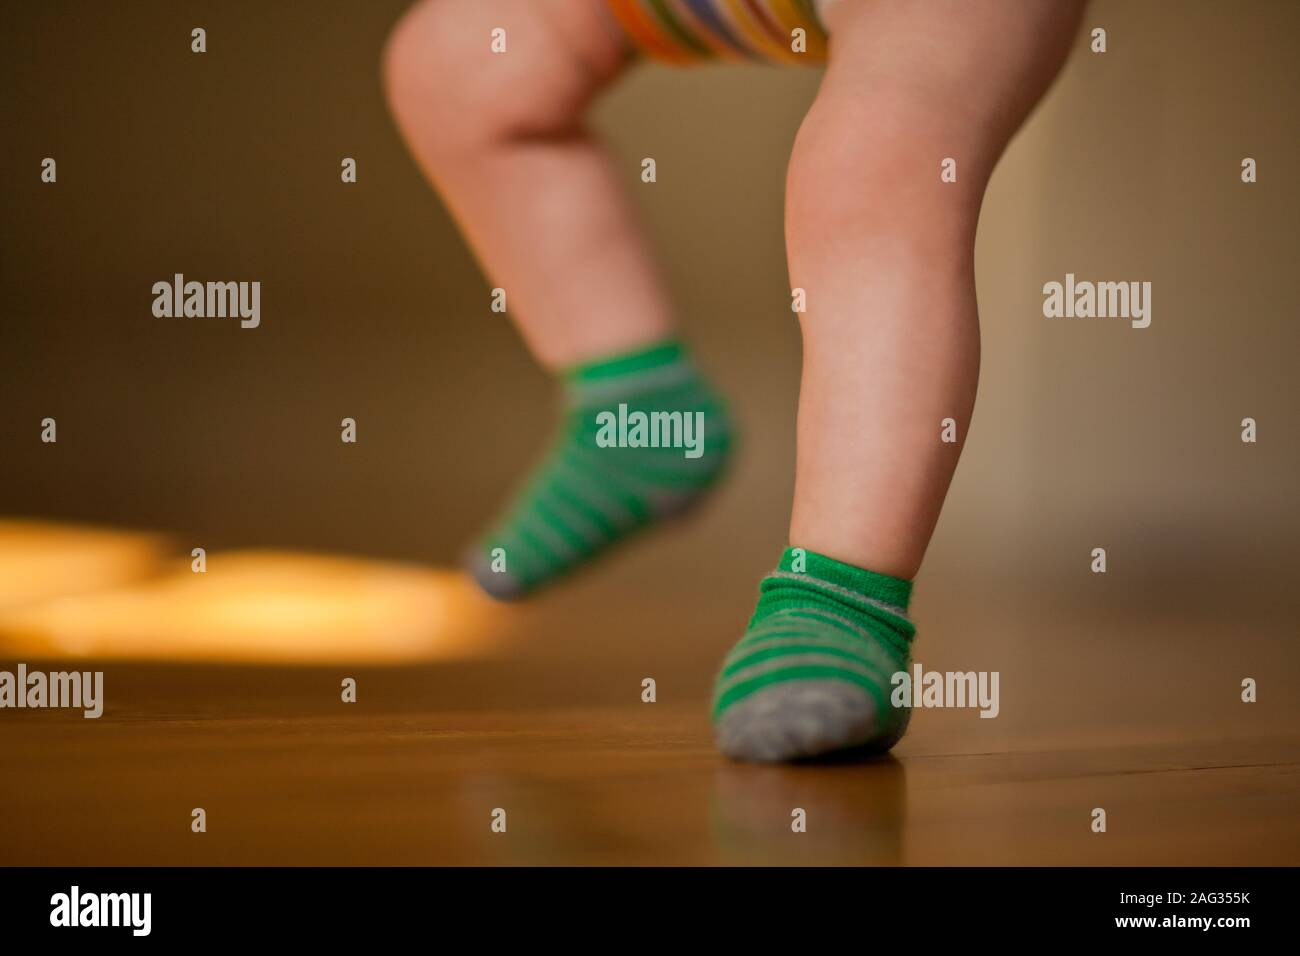 Legs Of A Baby On A Hardwood Floor While Bouncing In A Baby Jumper